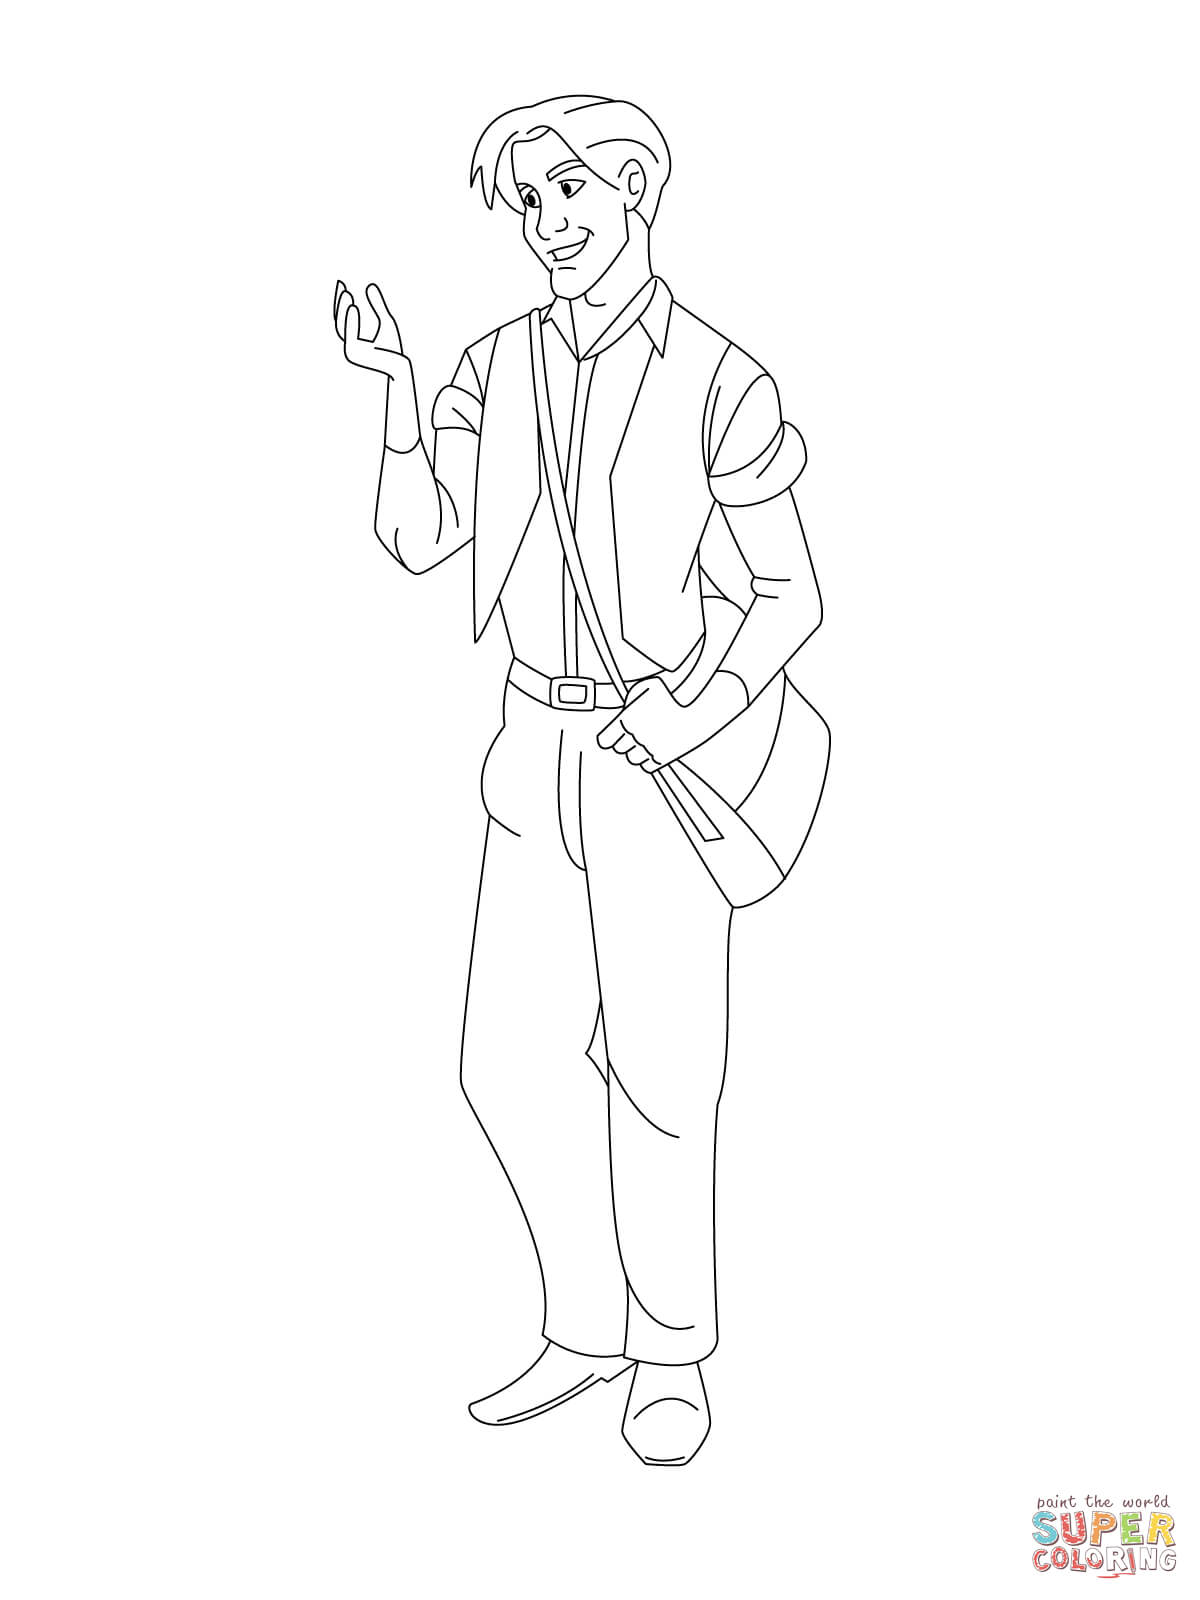 Dimitri Coloring Page Free Printable Coloring Pages